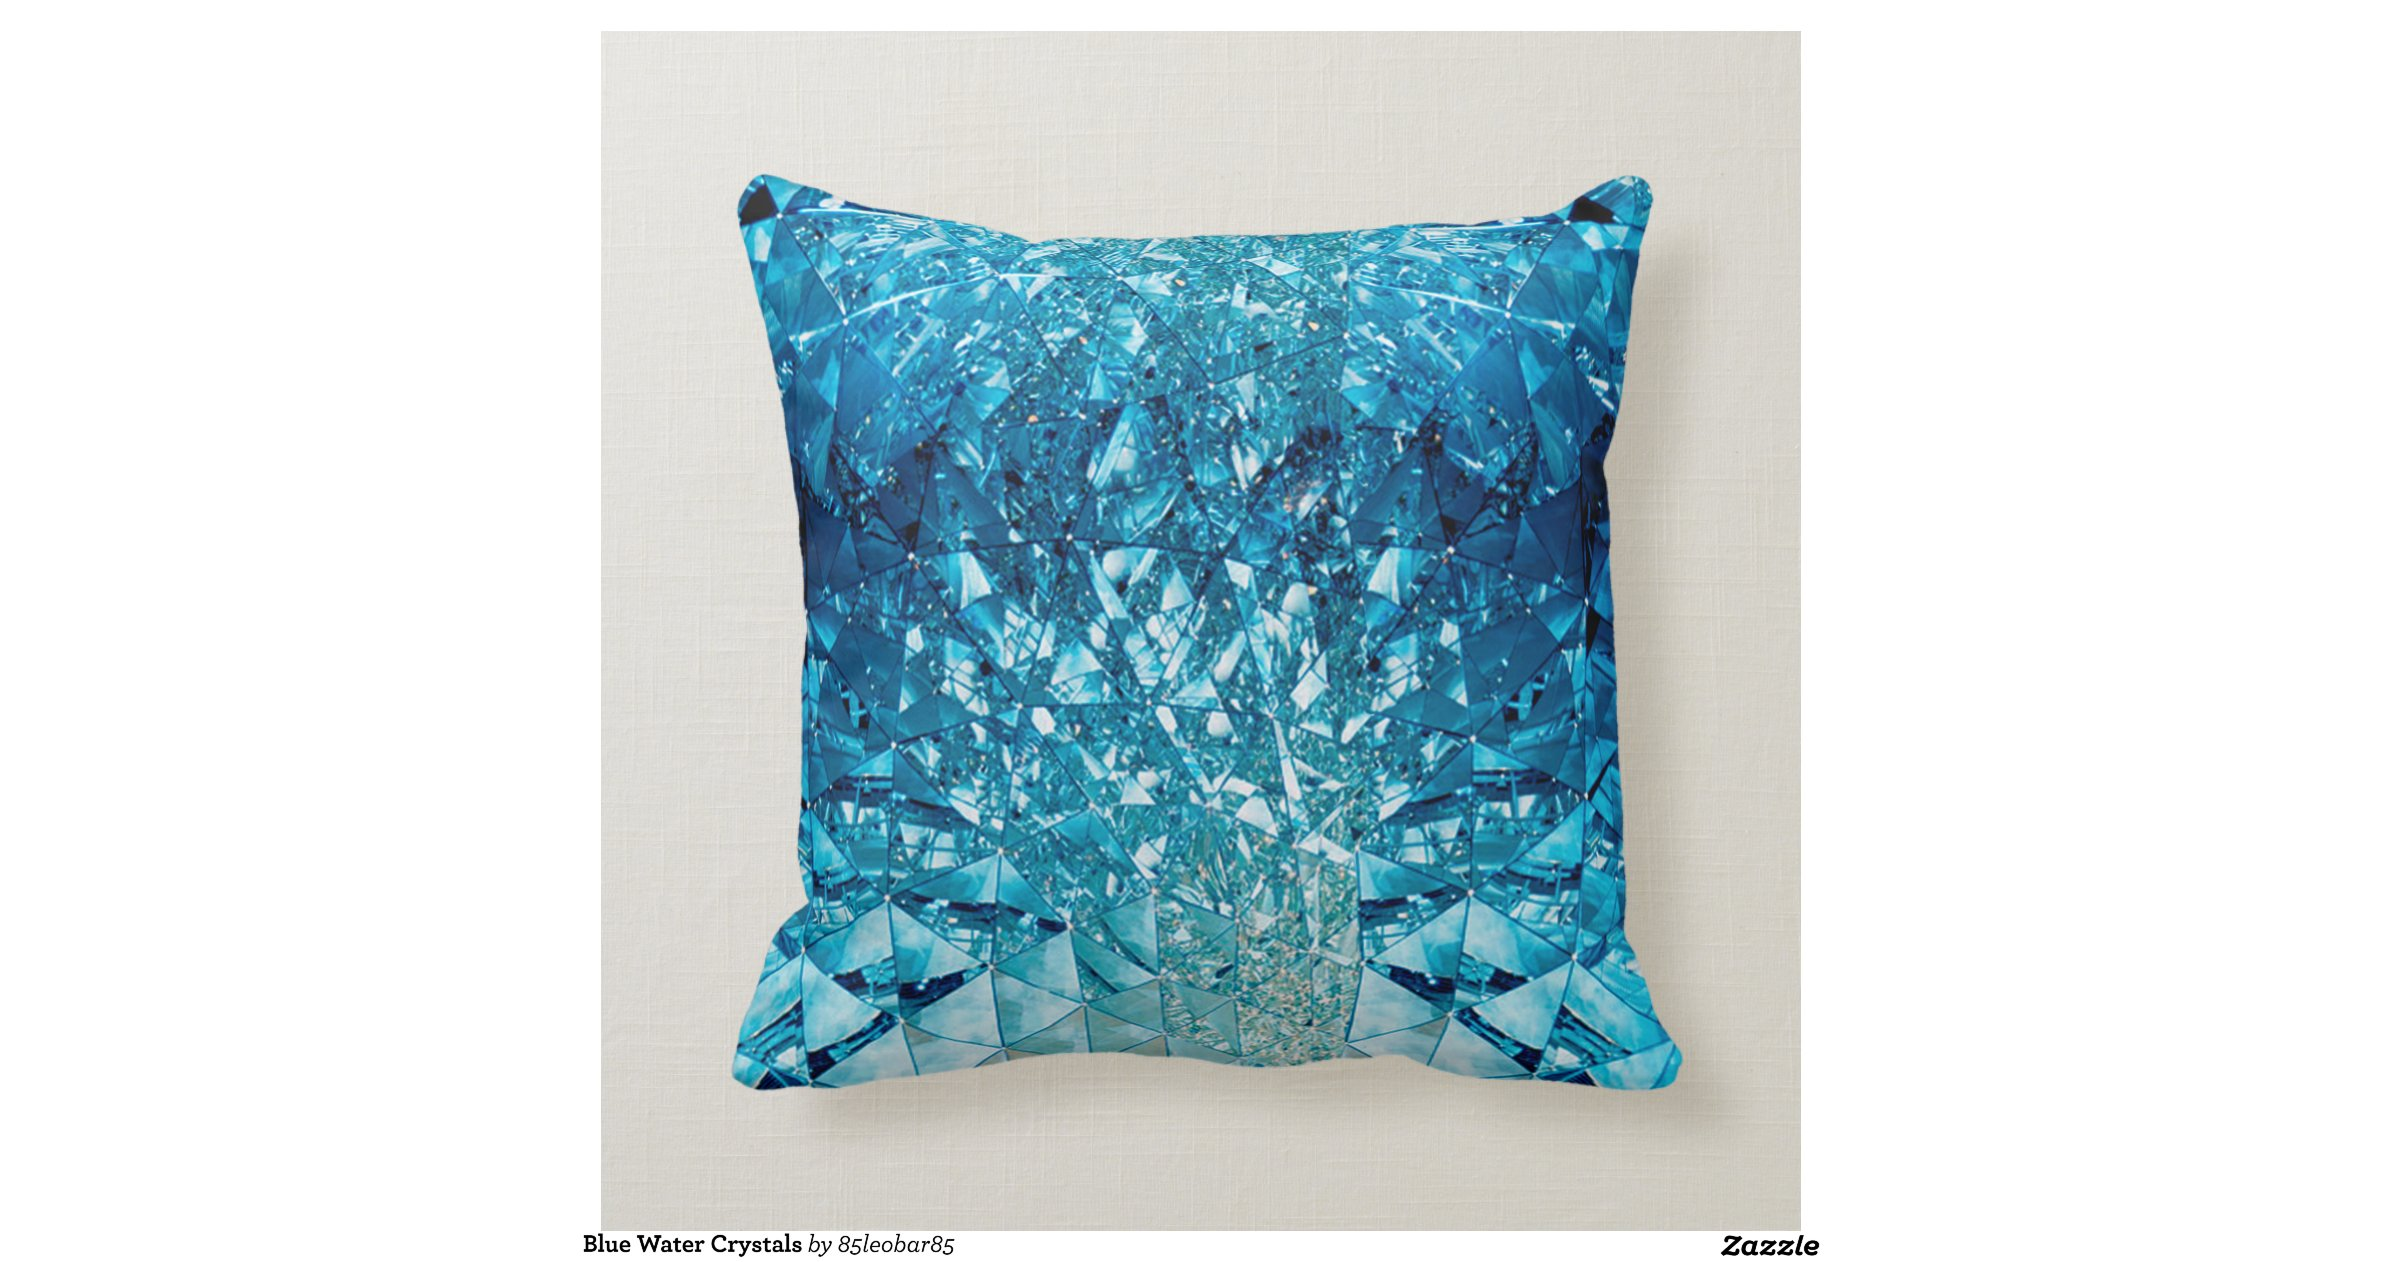 Throw Pillows Under 5 Dollars : Blue Water Crystals Throw Pillows Zazzle